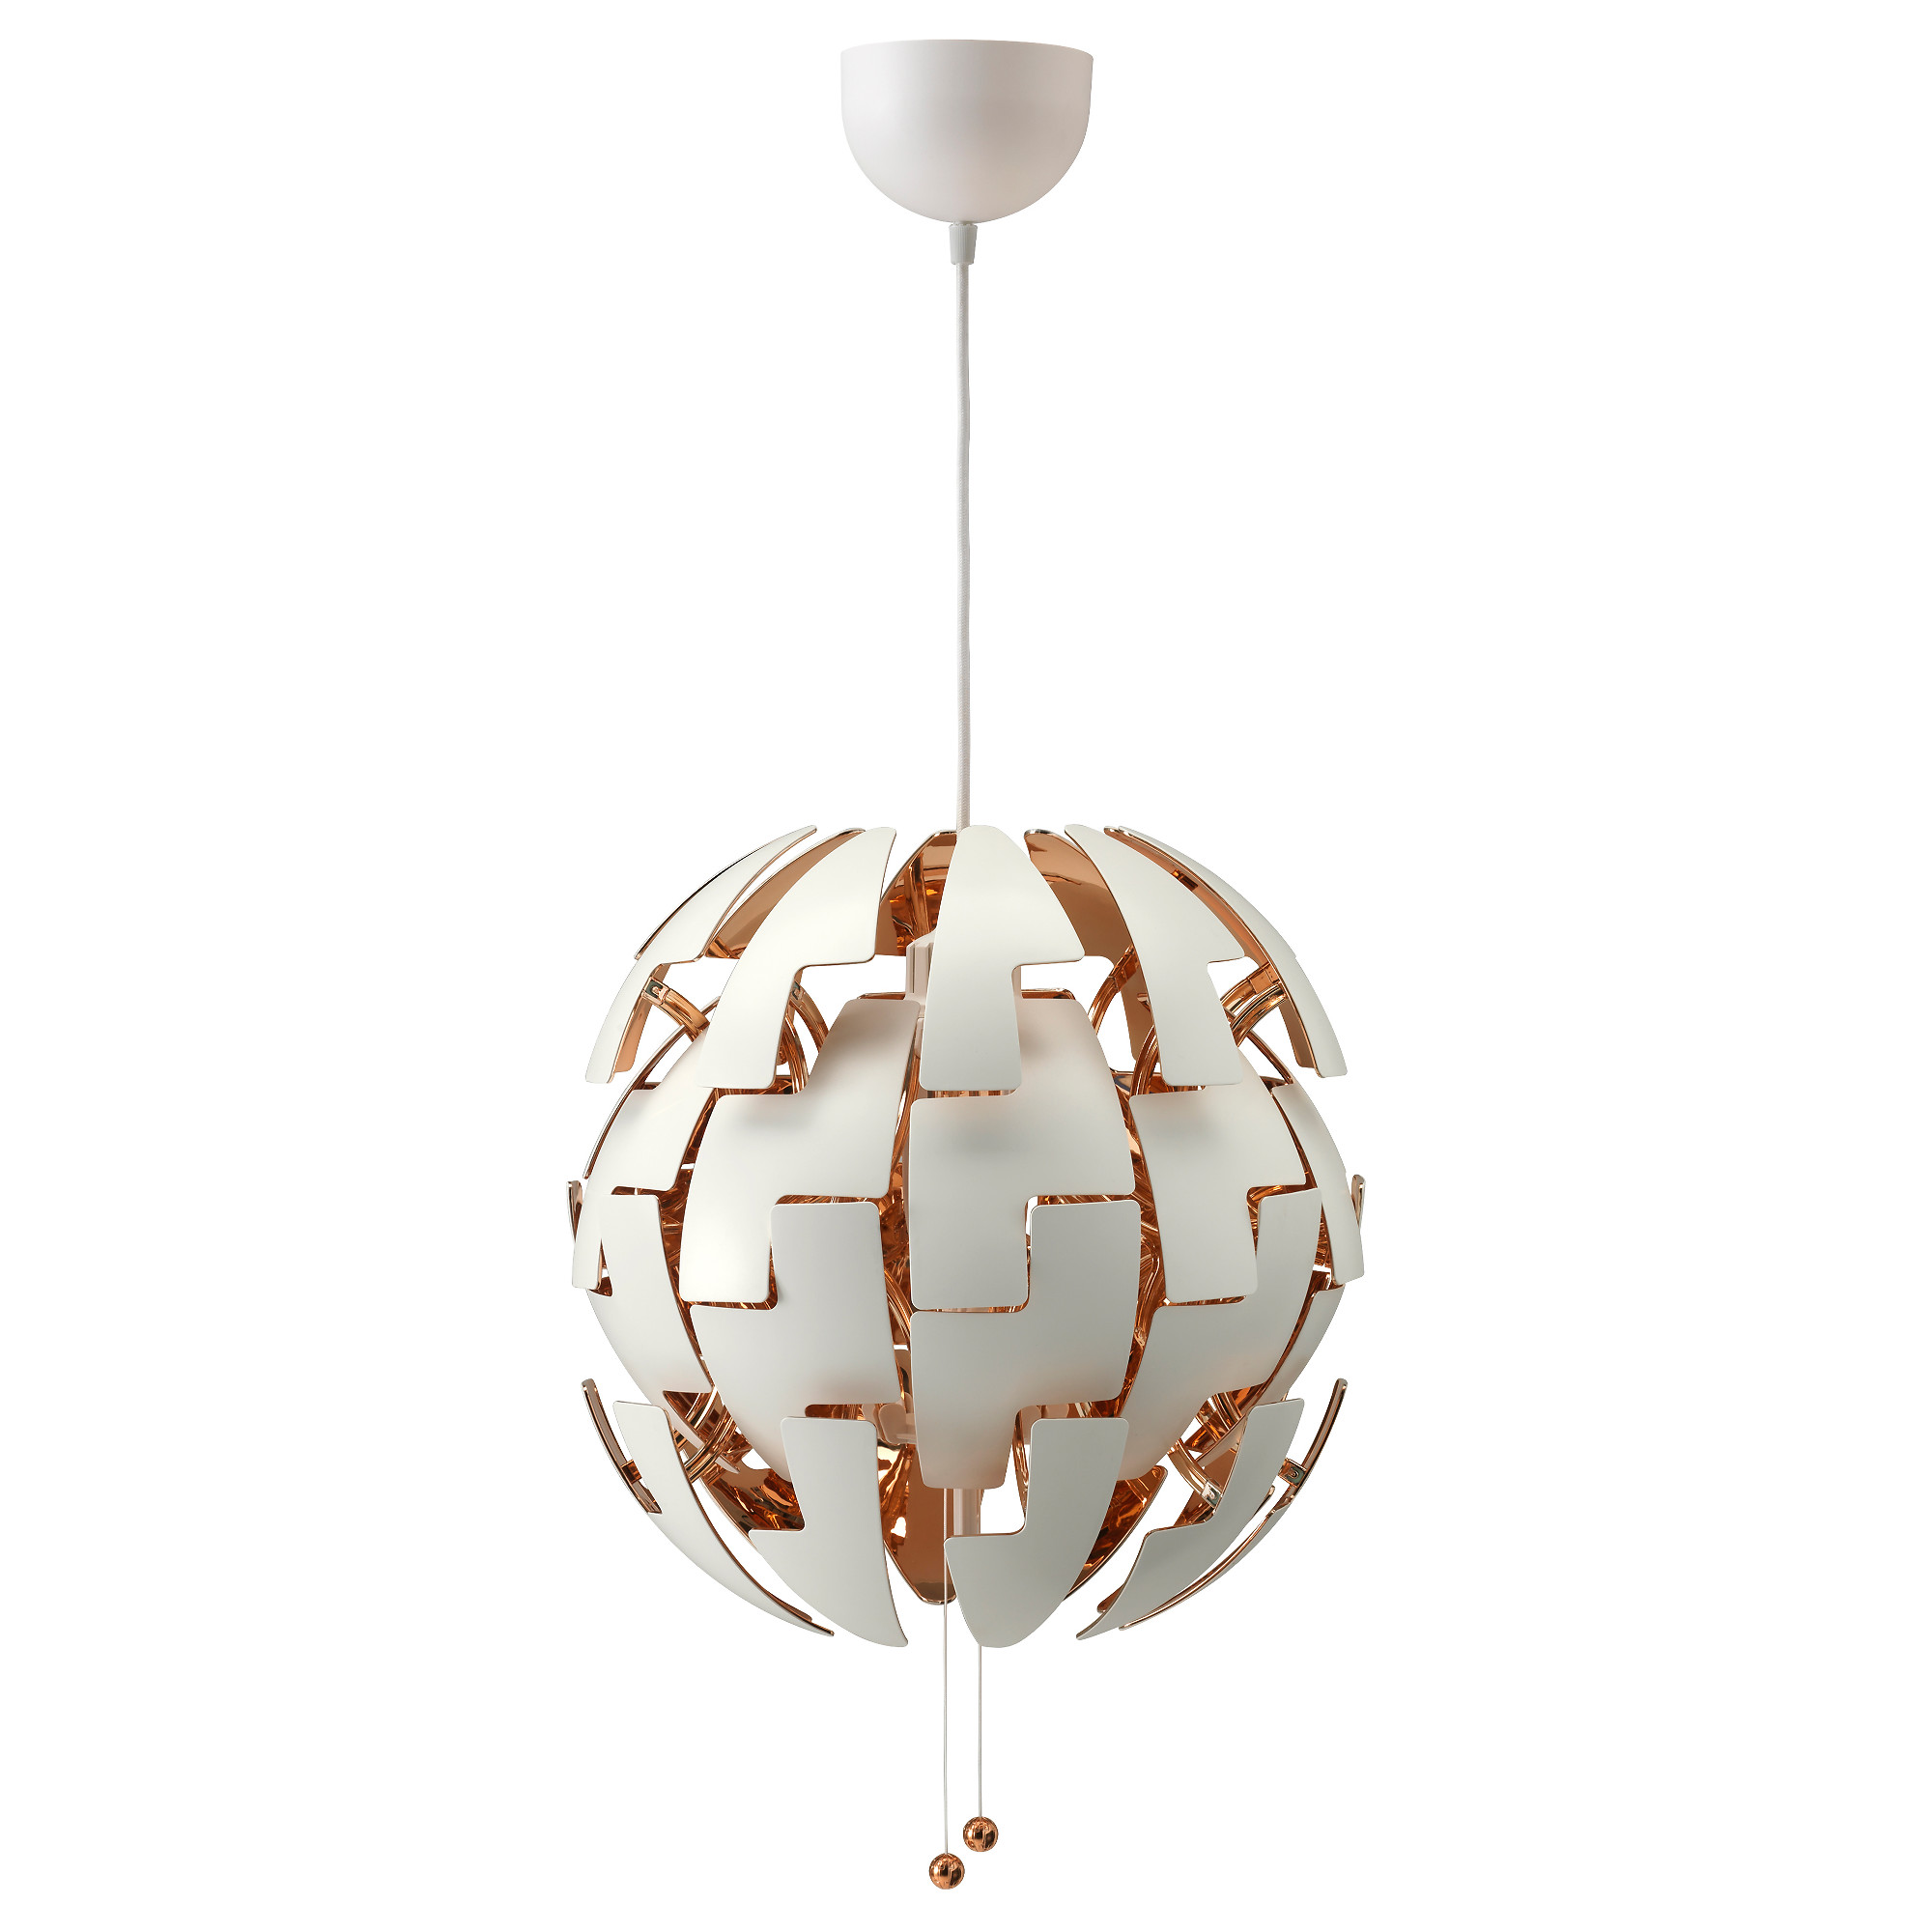 Ikea Led Ceiling Lights Is One Of The Best Energy Efficient Ceiling Lights Warisan Lighting